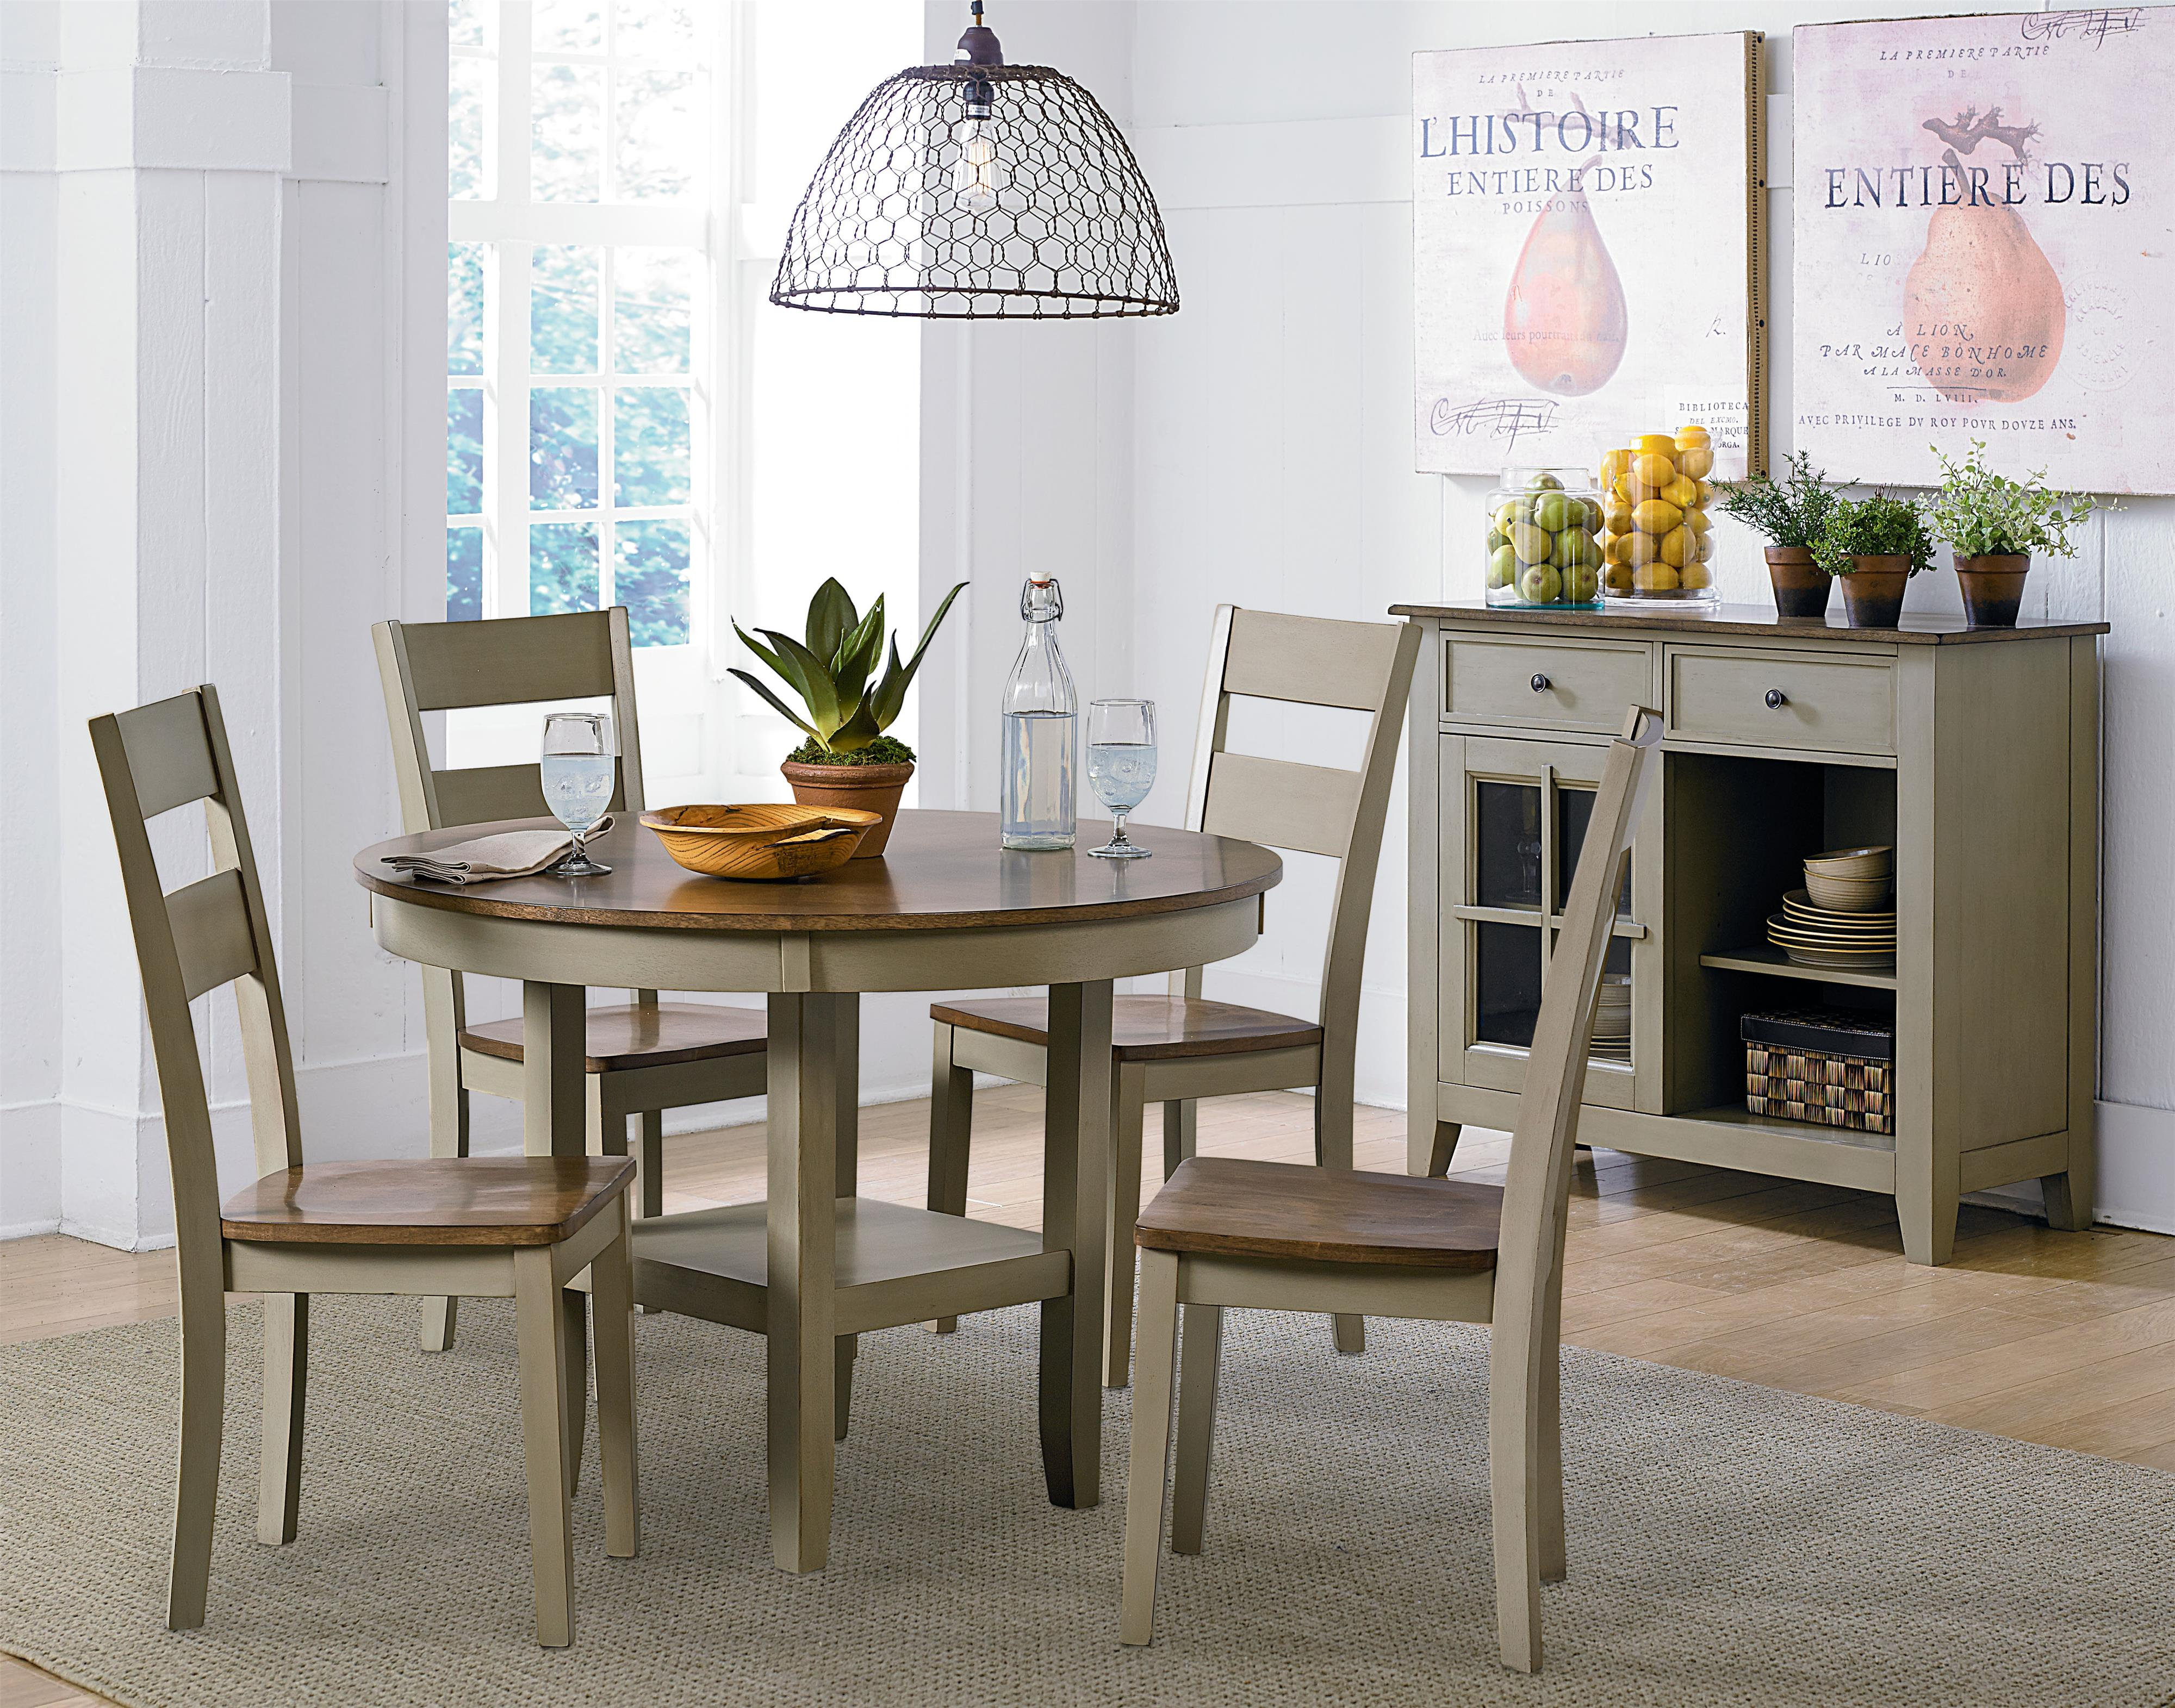 Standard Furniture Pendwood Sage Casual Dining Room Group - Item Number: 15620 Dining Room Group 1